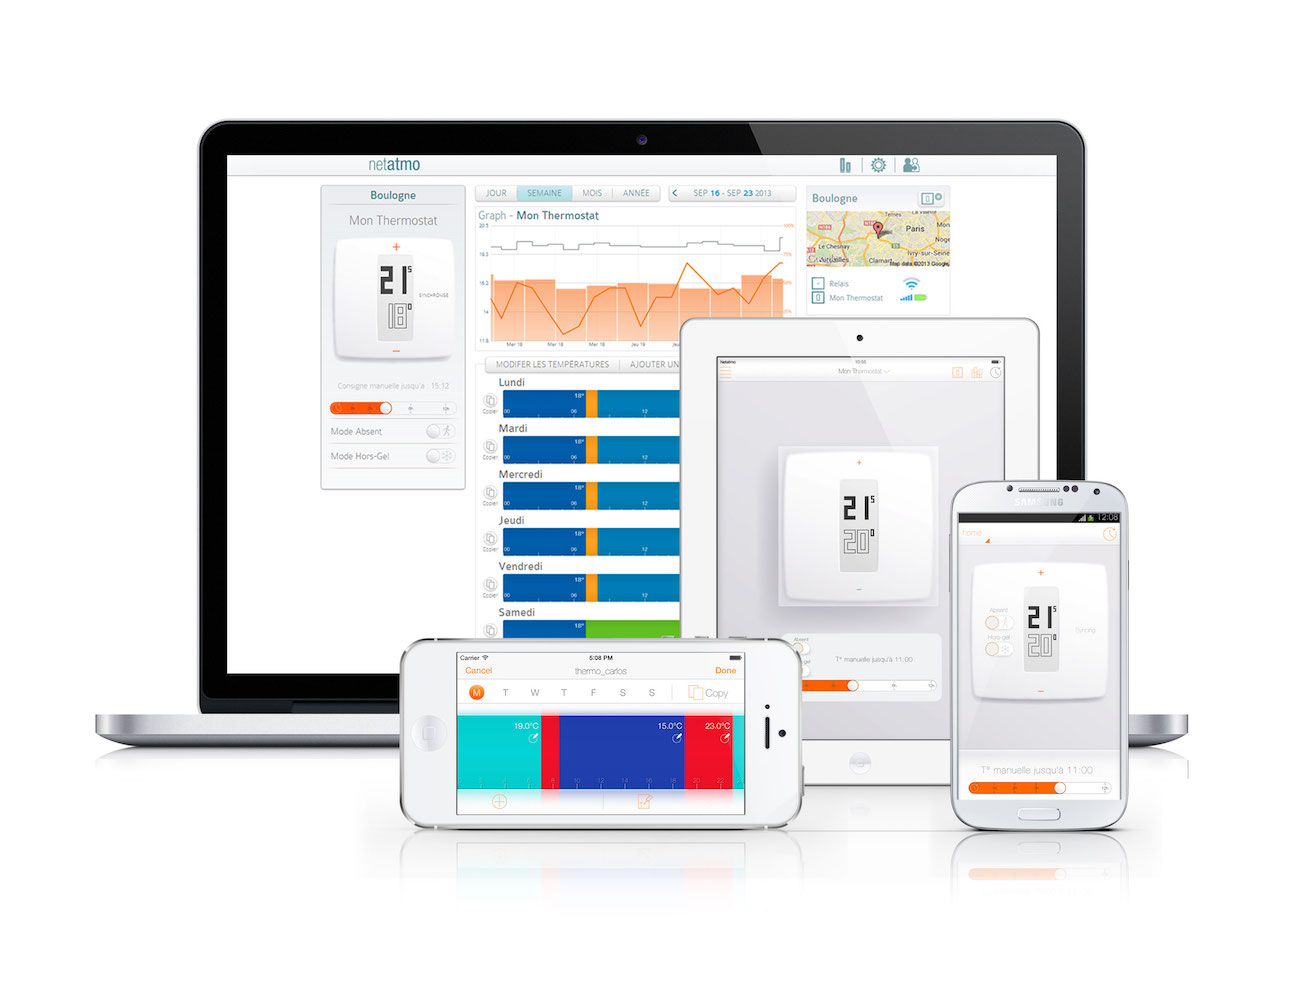 Thermostat For Smartphone, Tablets and Laptops by Netatmo